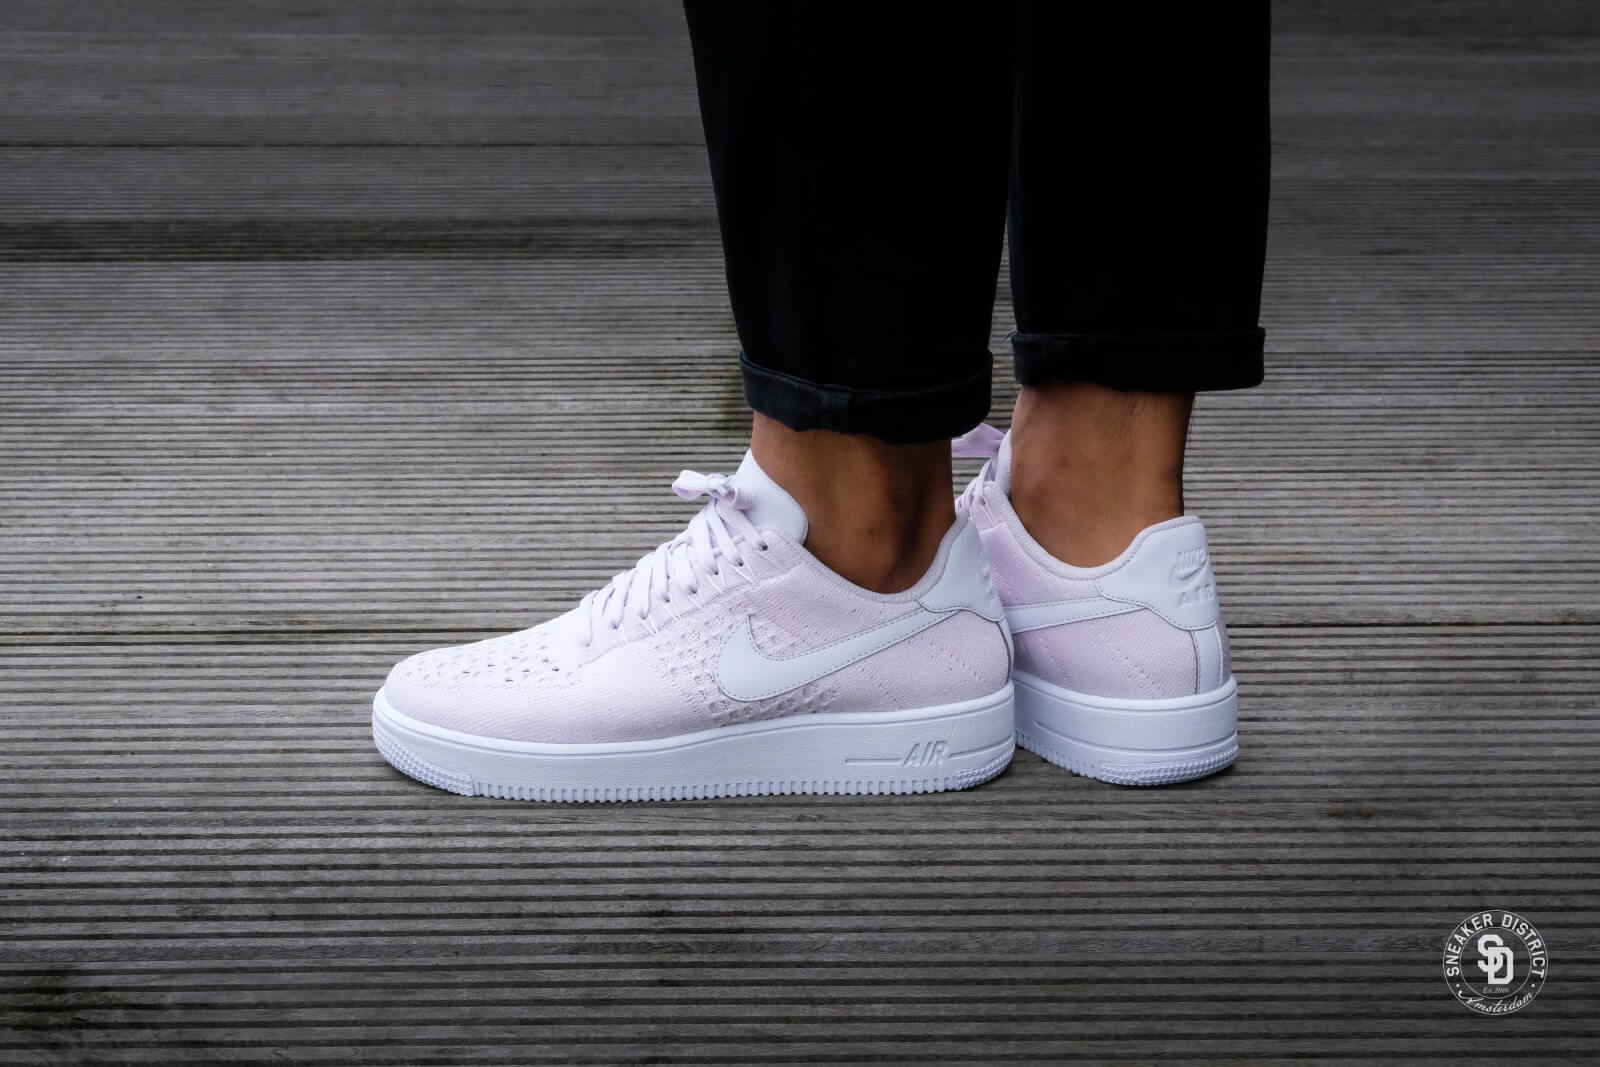 Nike Air Force 1 Ultra Flyknit Low Light VioletWhite 817419